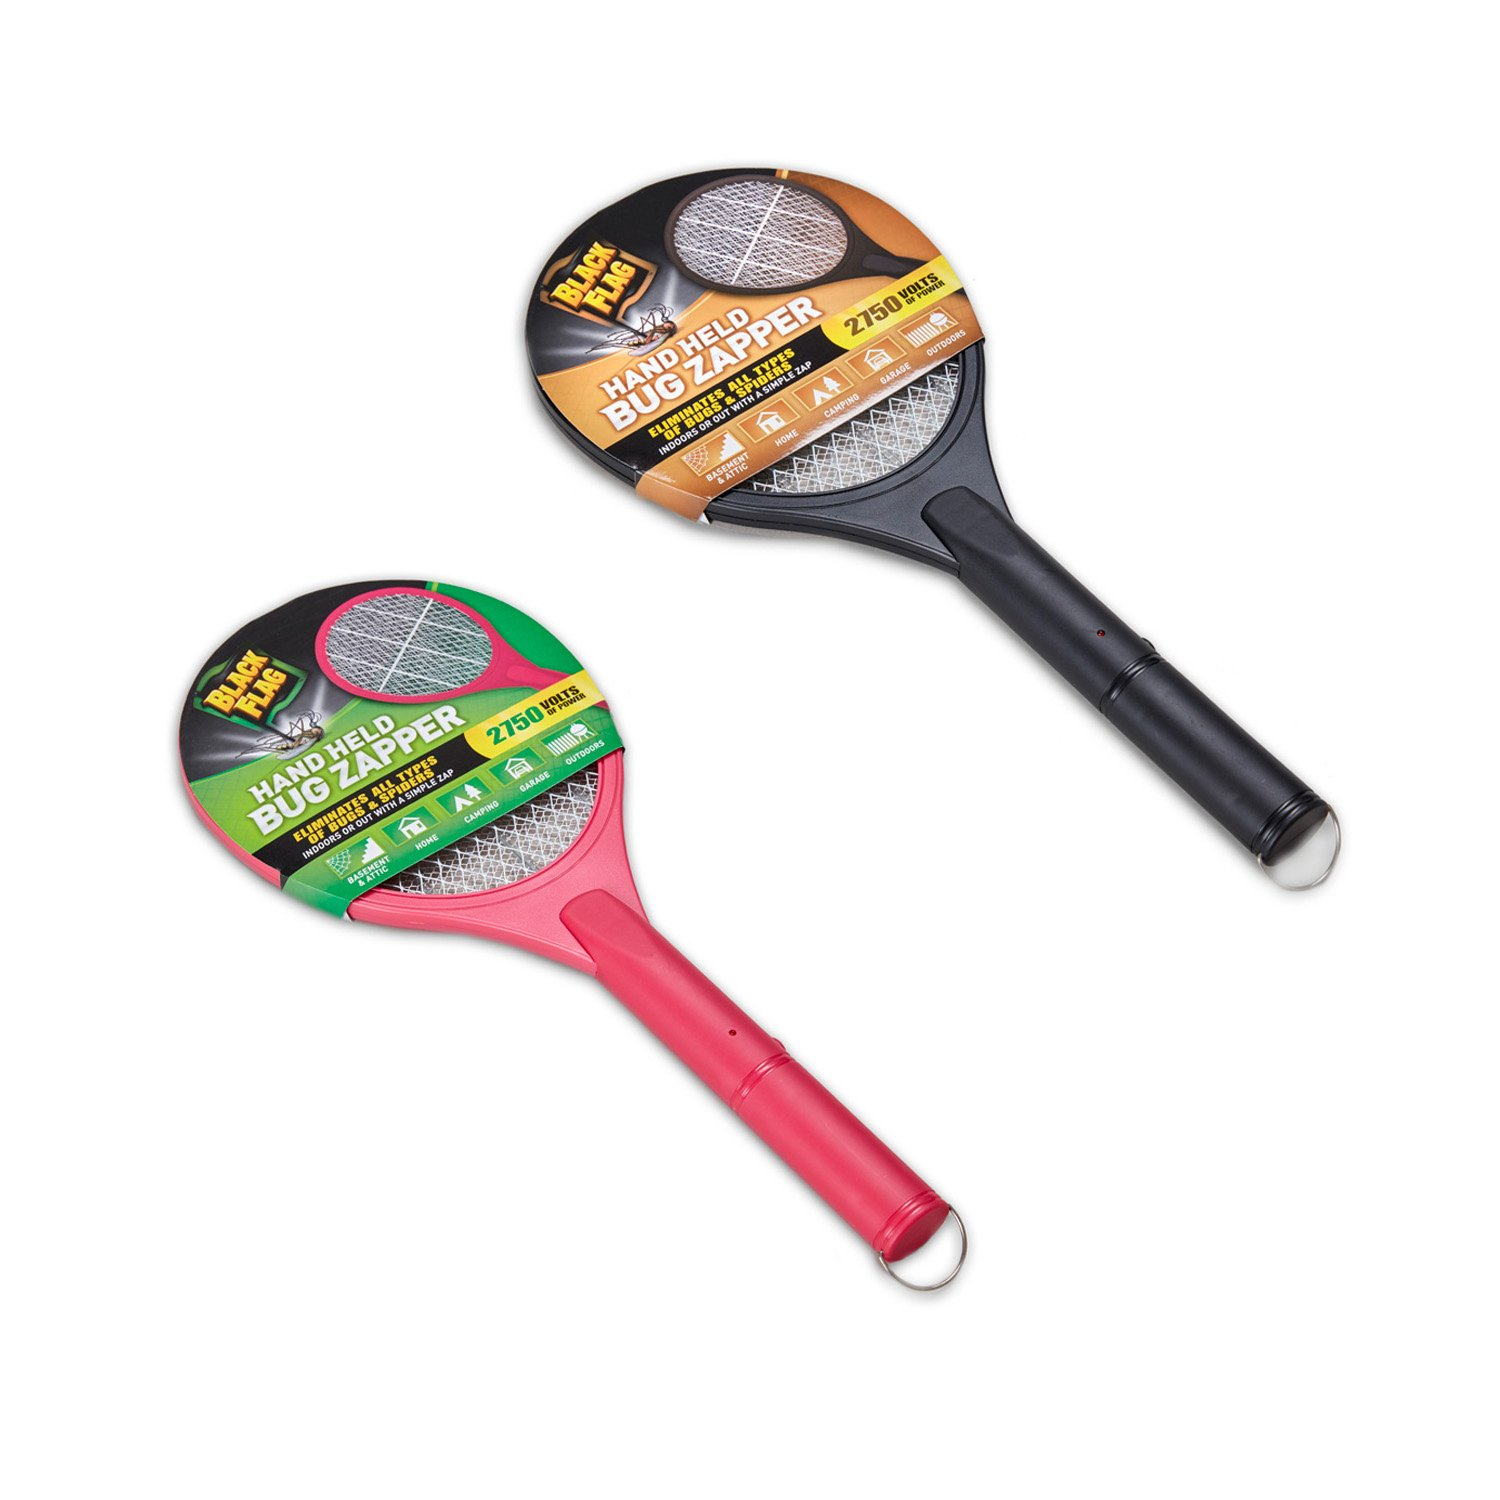 Black Flag Handheld Bug Zapper - 2-Pack, 1 Black and 1 Pink Greenscapes ZR-4454